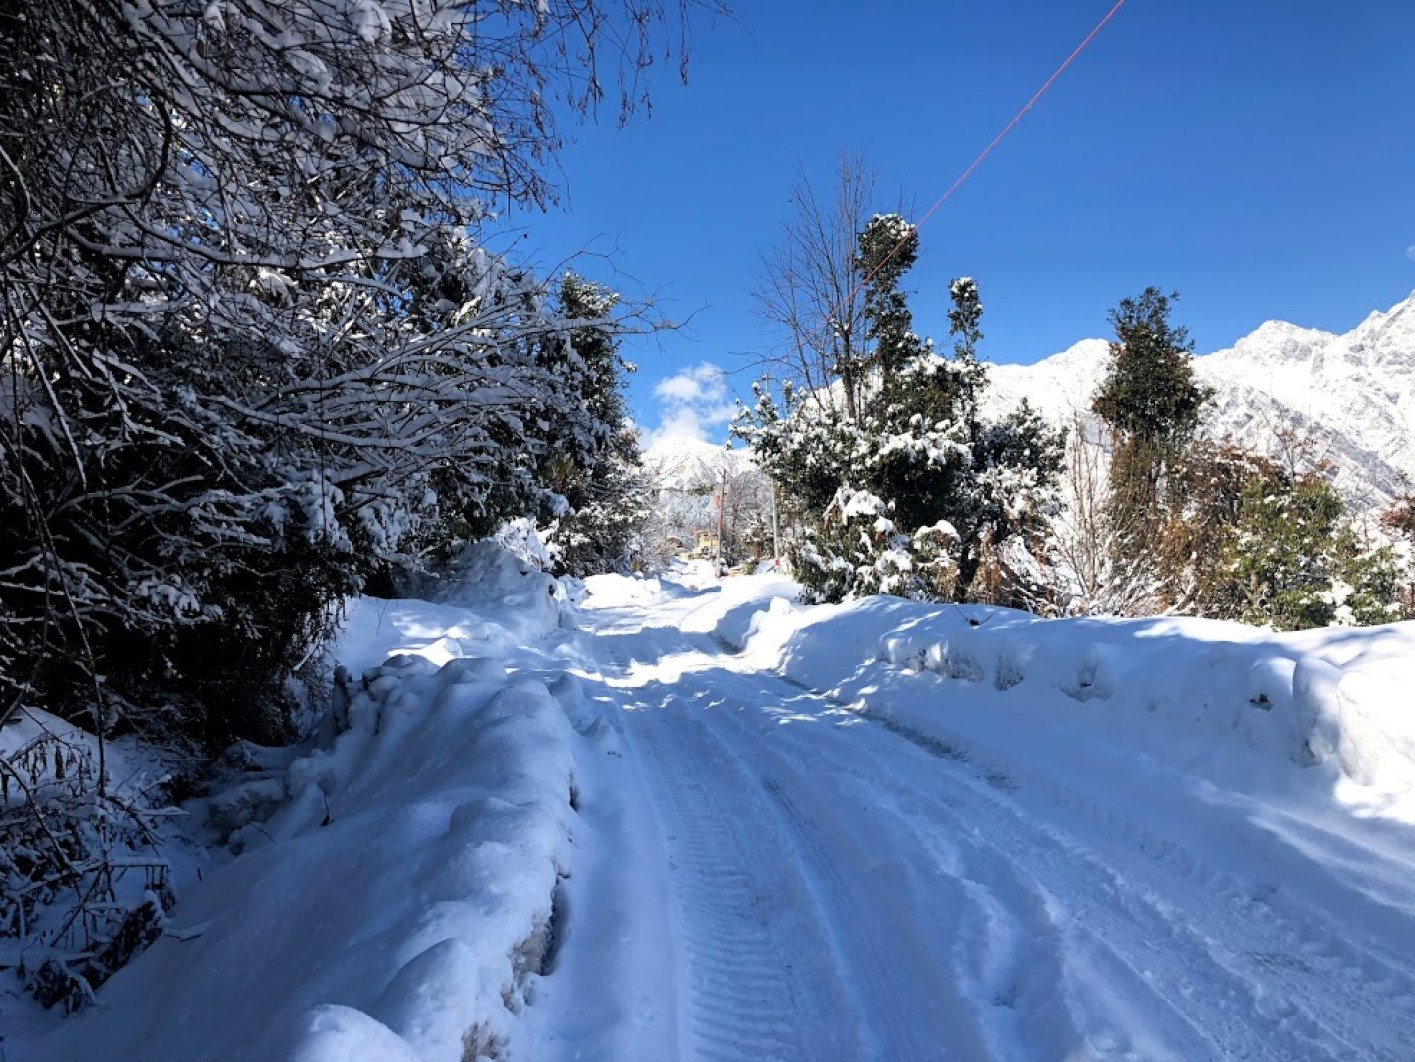 How to reach Auli from Joshimath : By hiring local 4x4 vehicle. The road condition in Feb 2020